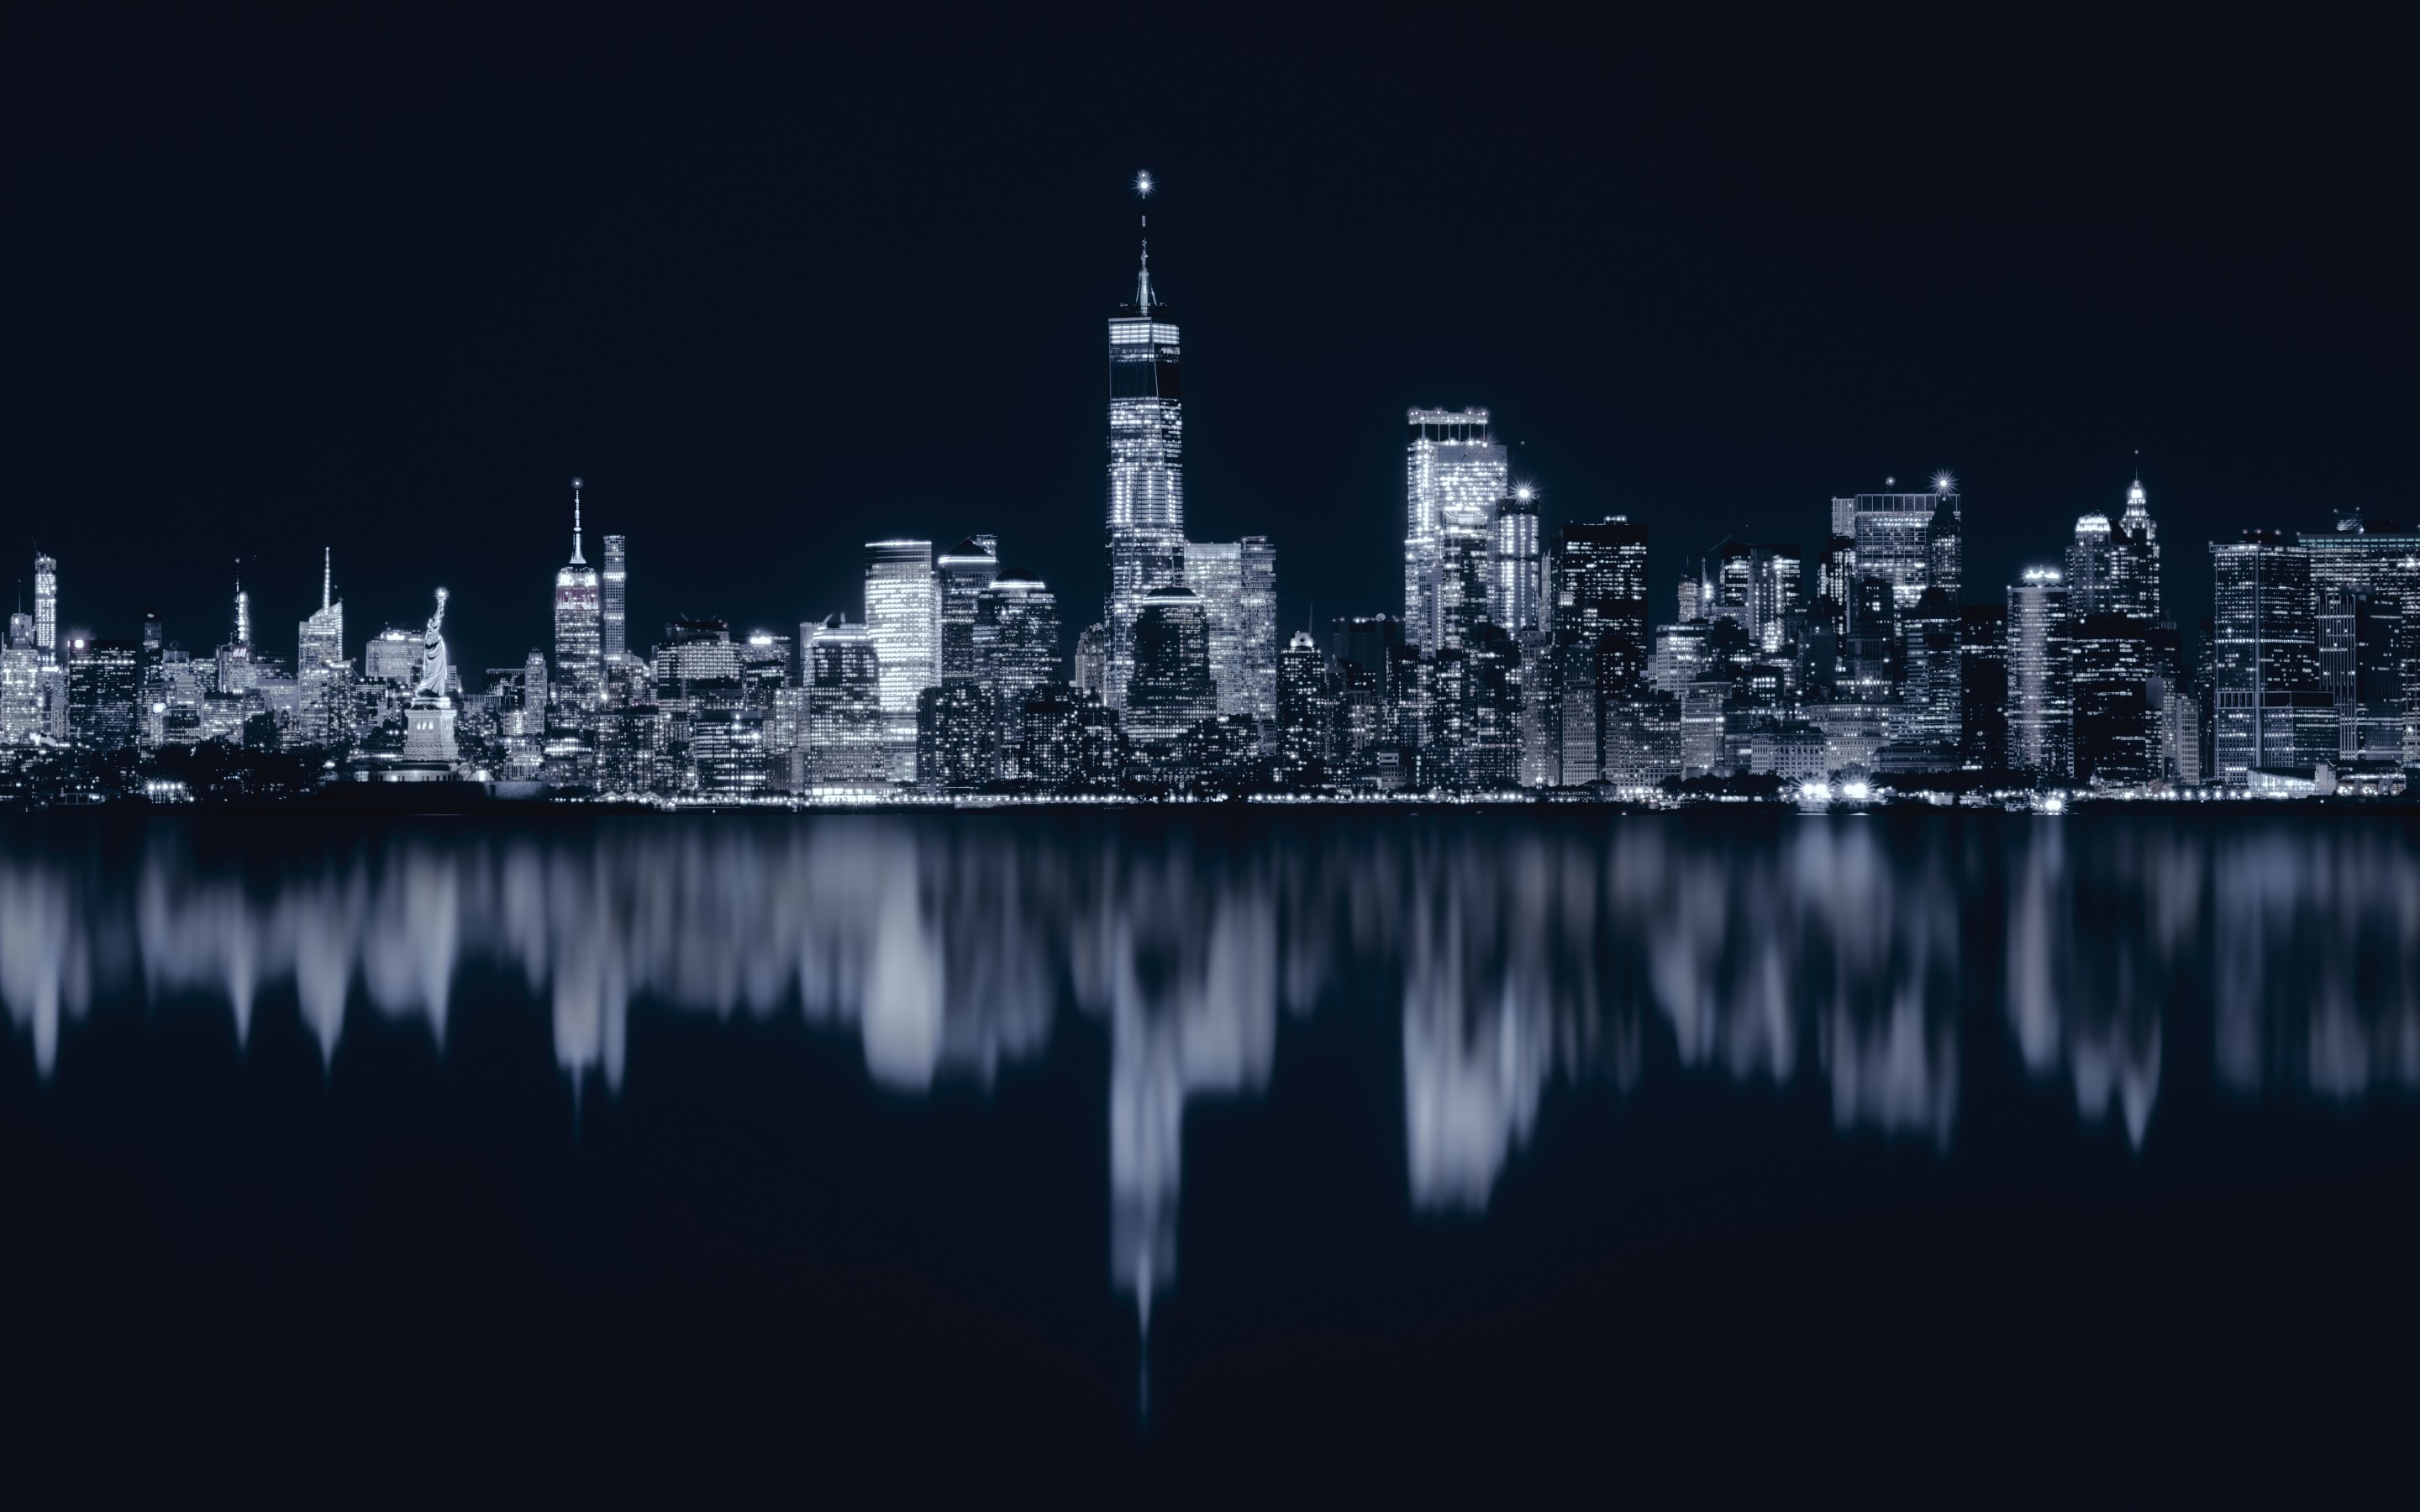 New York City At Night Wallpaper 2880x1800 Download Hd Wallpaper Wallpapertip